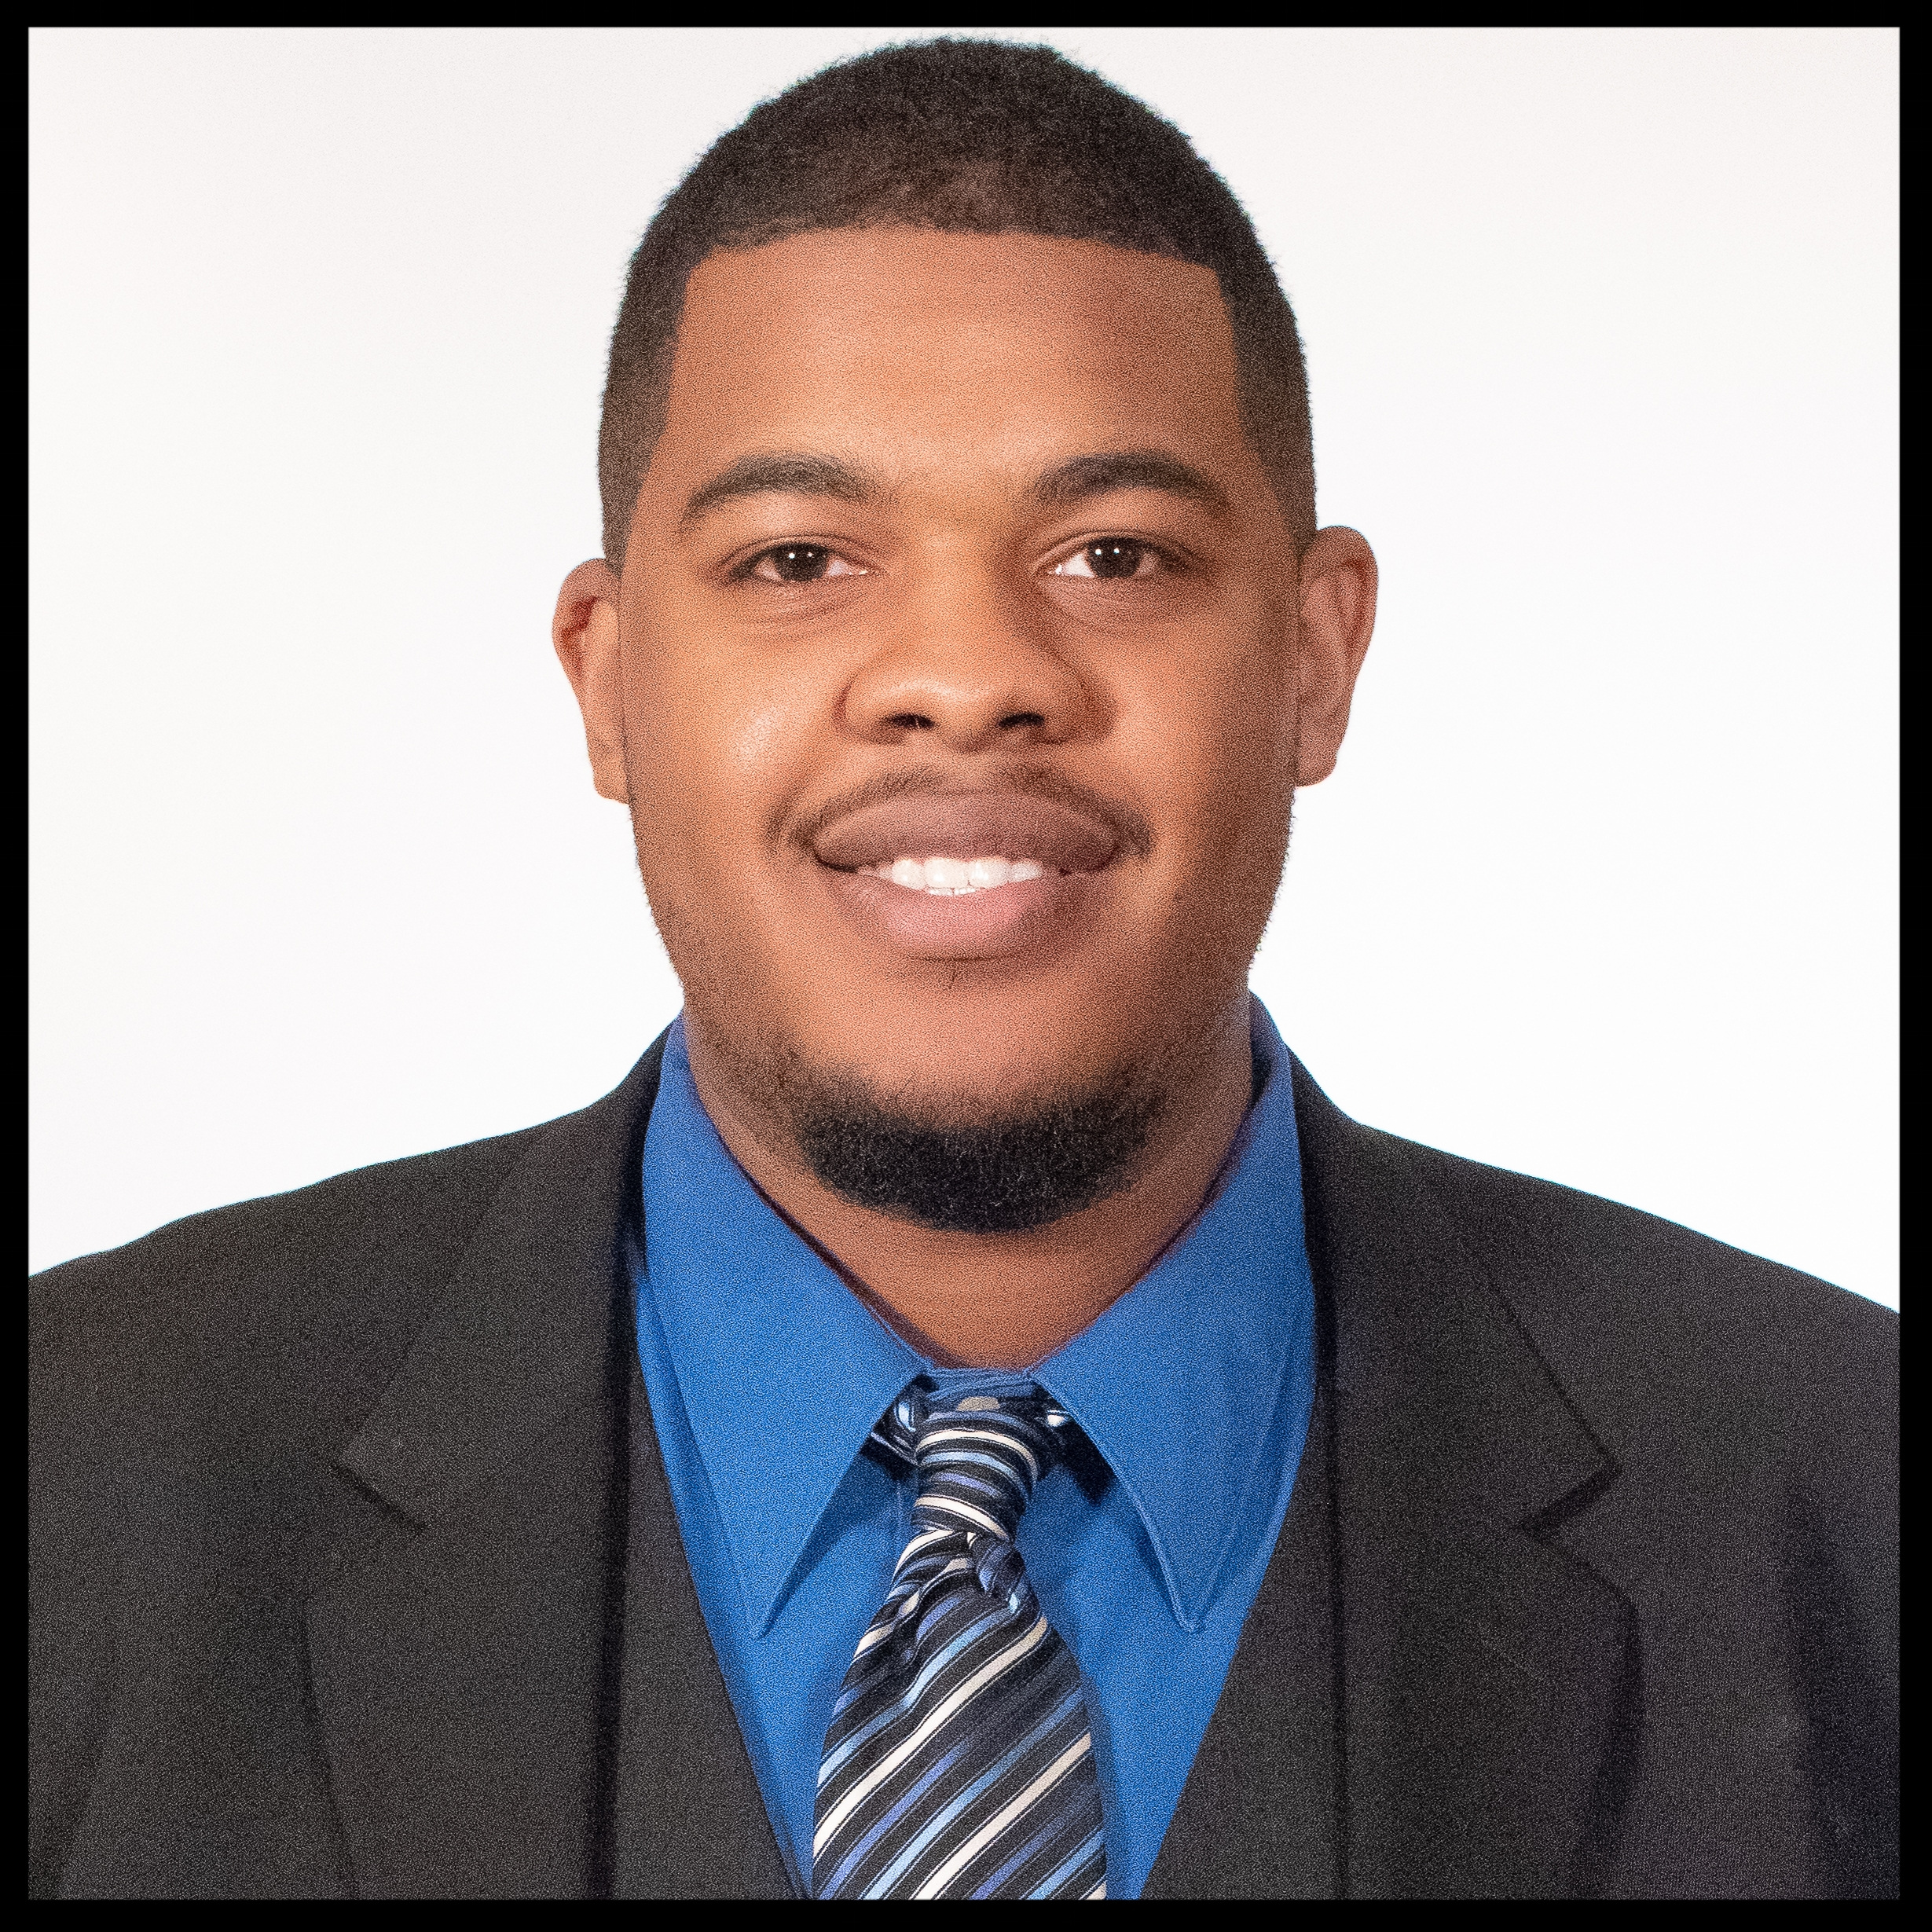 Jonathan Harris  Age: 27 Category: Business Location: Fort Washington